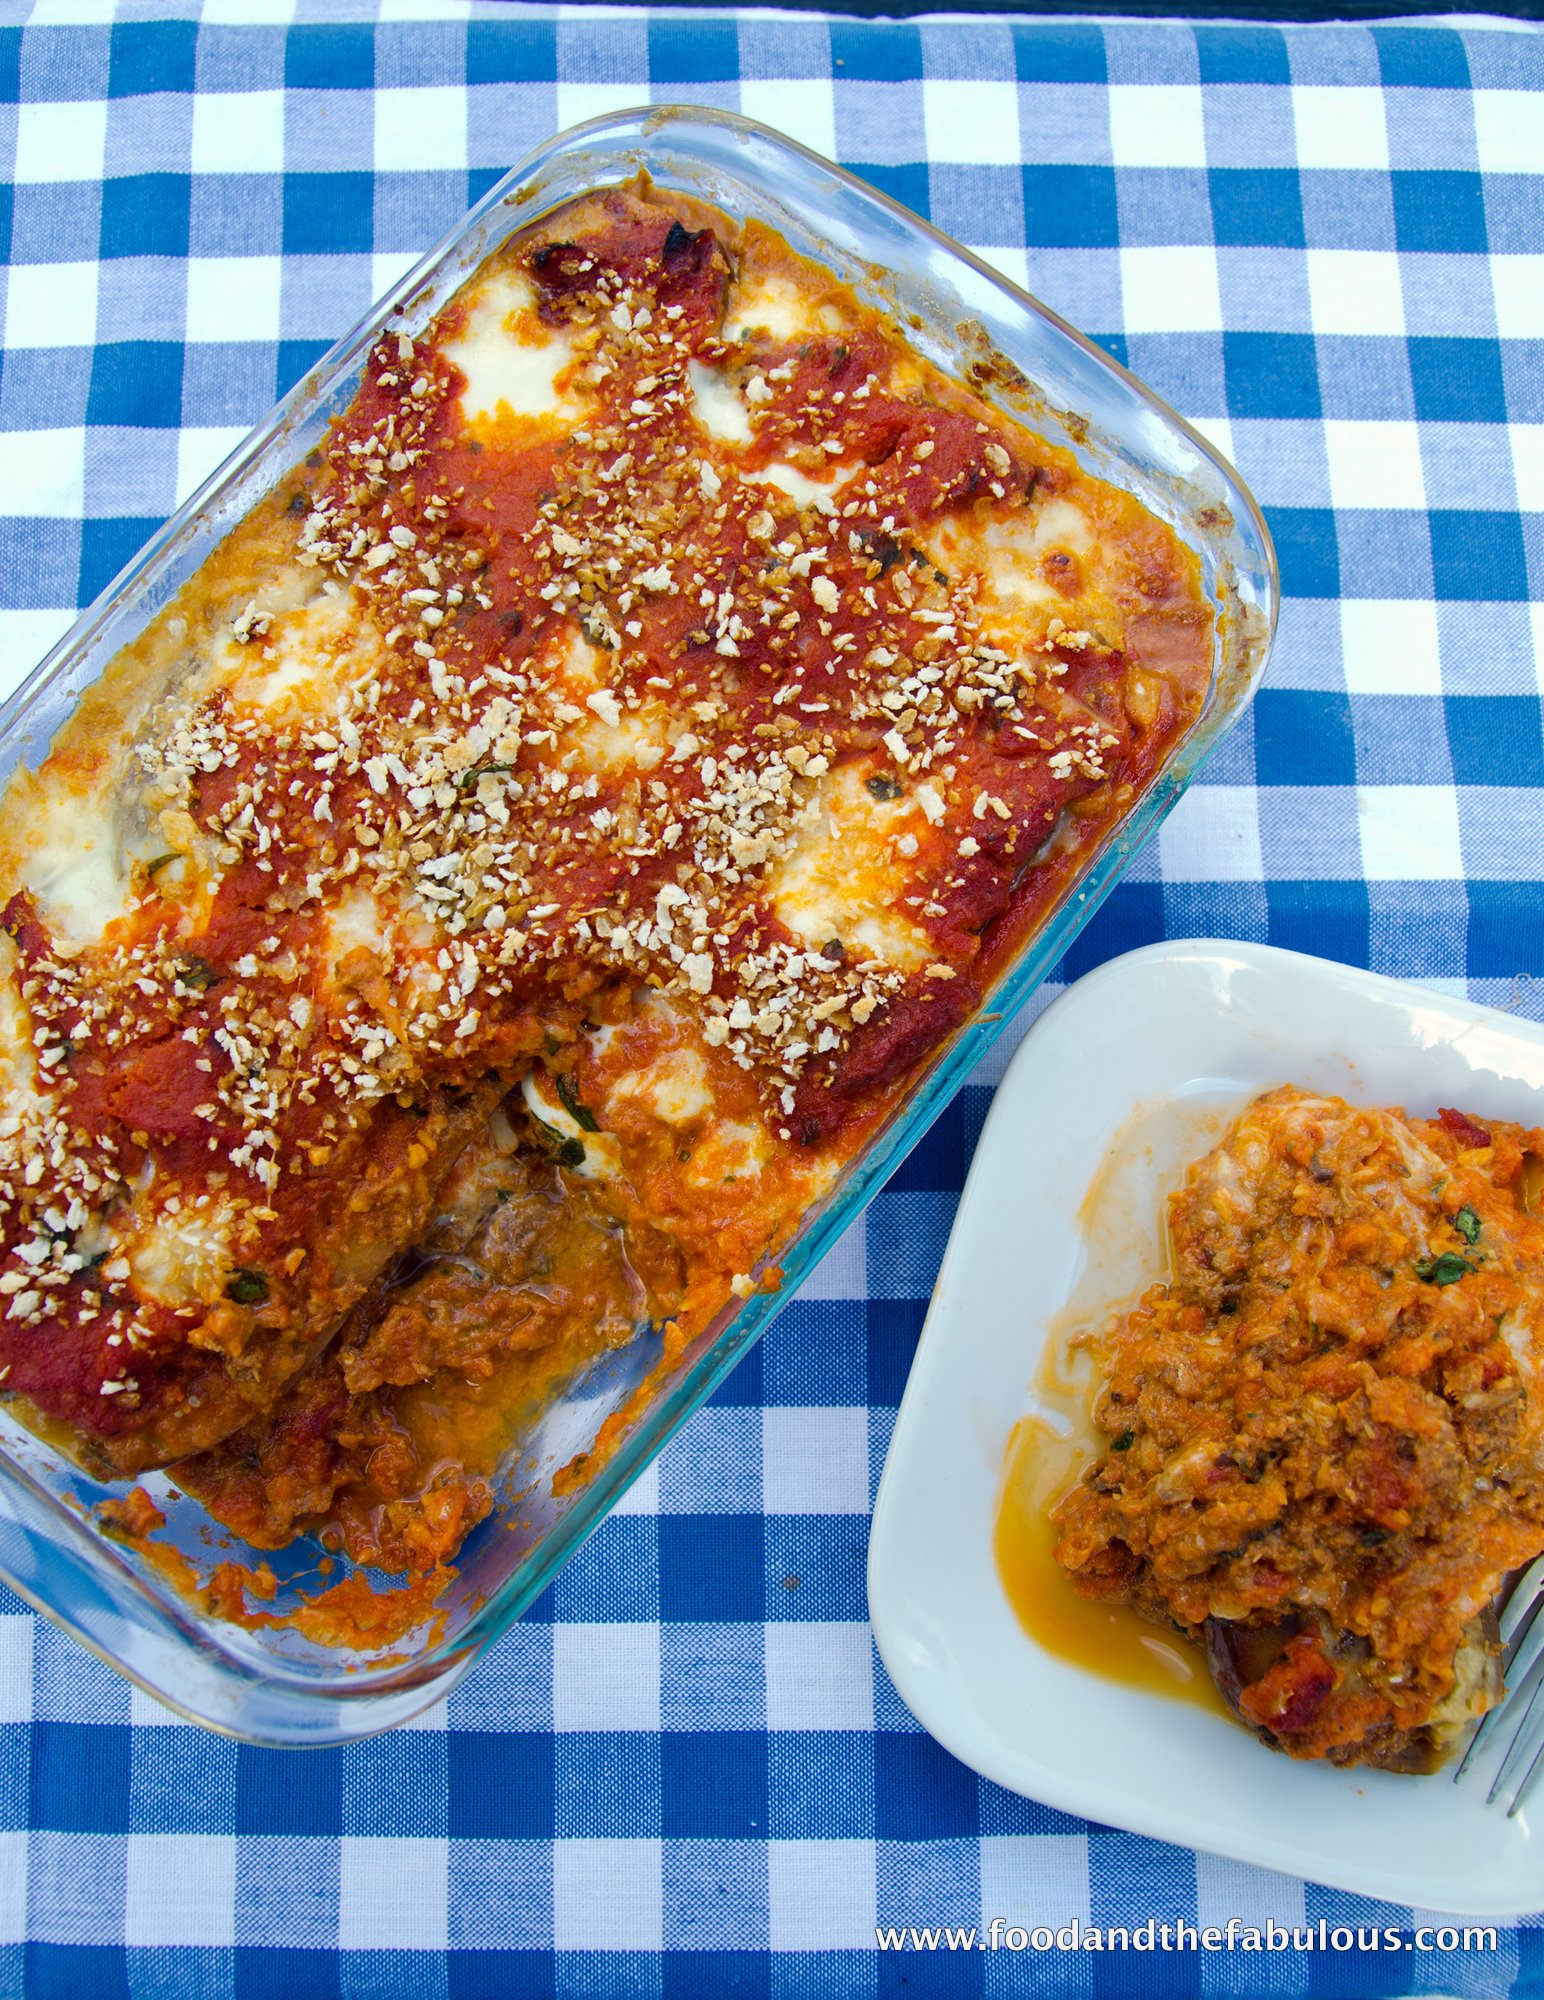 Melazane Parmigiana with Fish